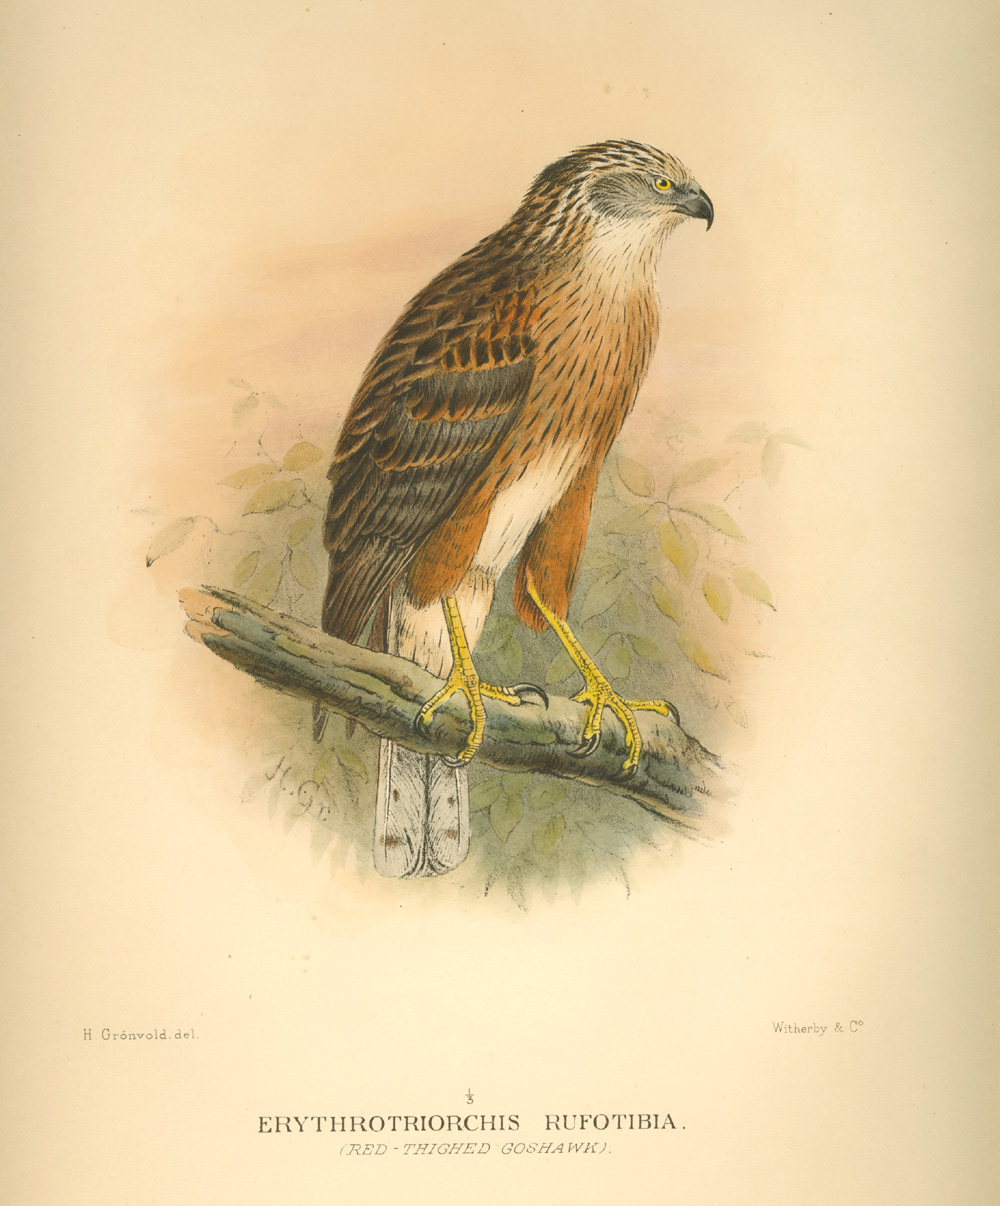 Australian Red-thighed Goshawk. Erythrotriorchis rufotibia. Mathews Birds of Australia c1910-27.